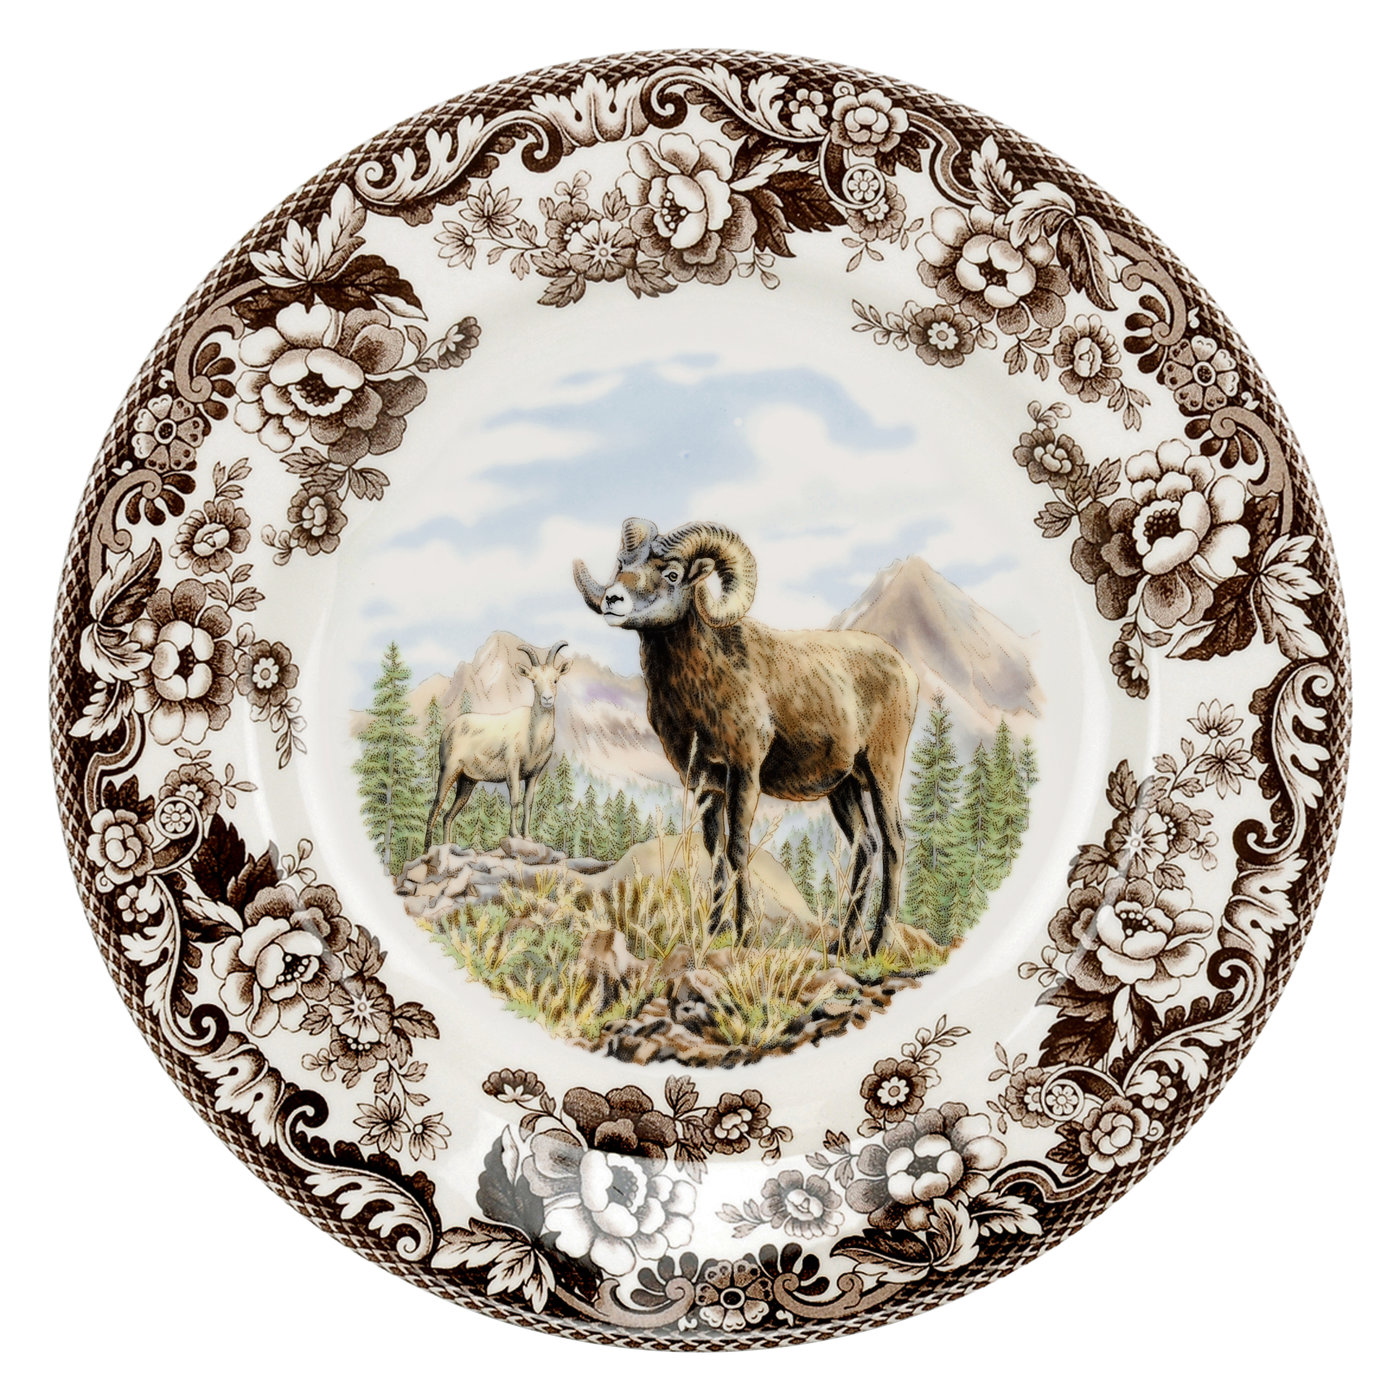 Spode Woodland Dinner Plate 10.5 Inch (Bighorn Sheep) image number 0